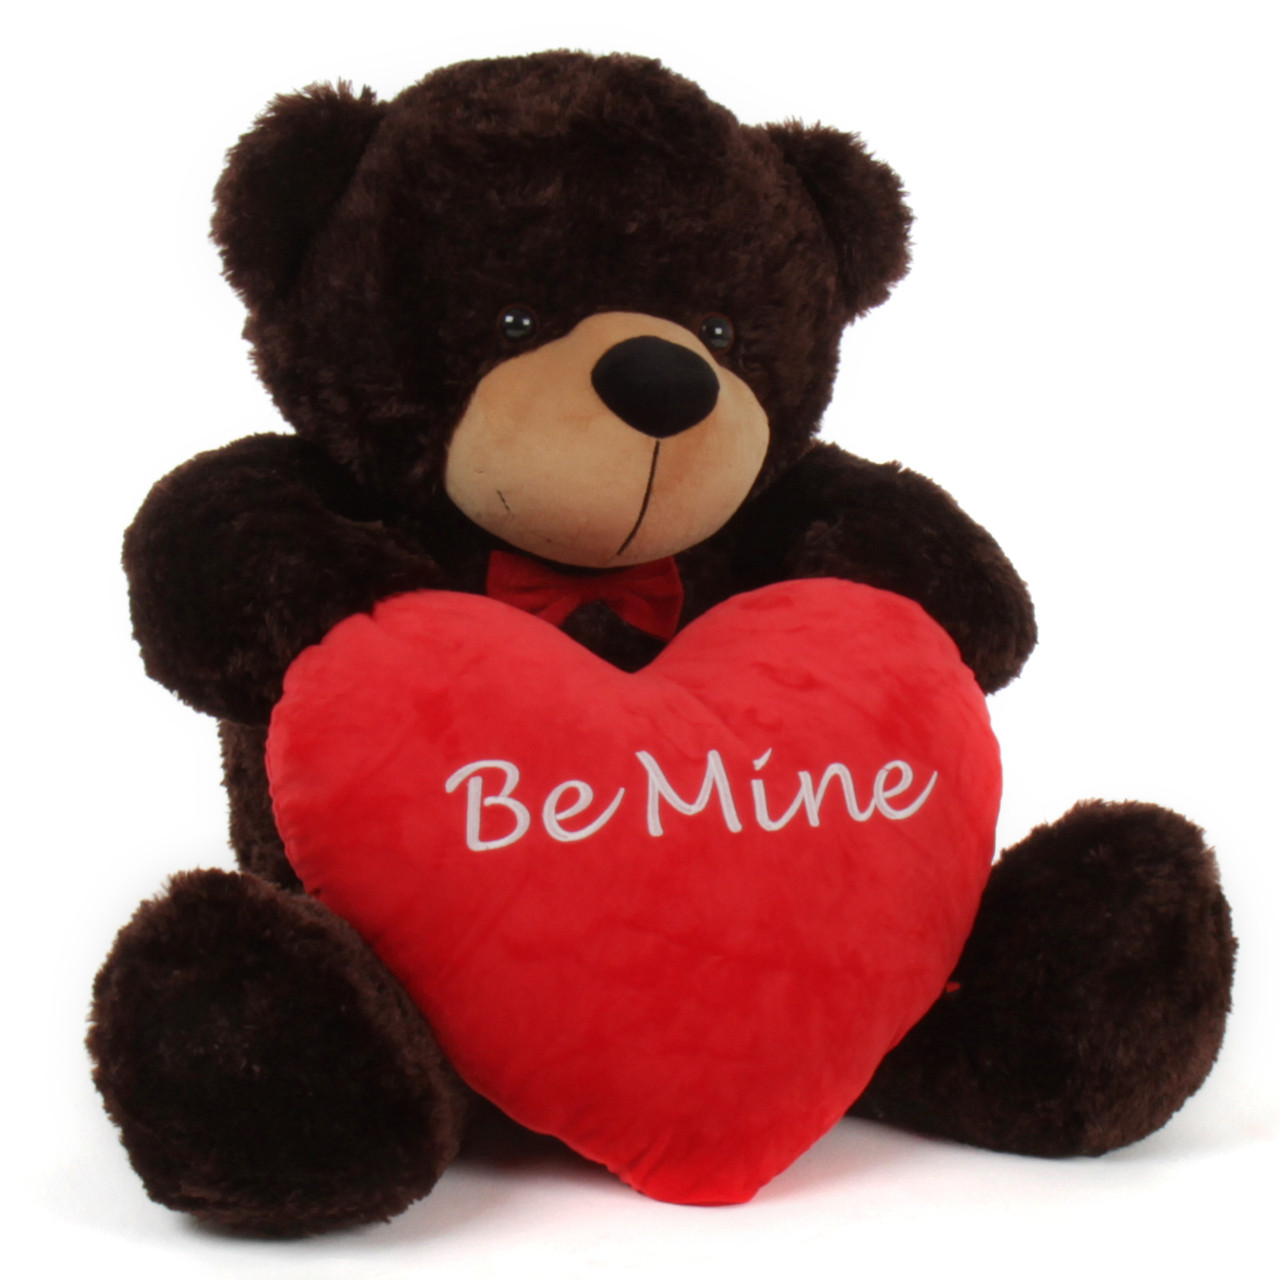 3 foot be mine valentines day teddy beart with red heart pillow - Giant Teddy Bears For Valentines Day